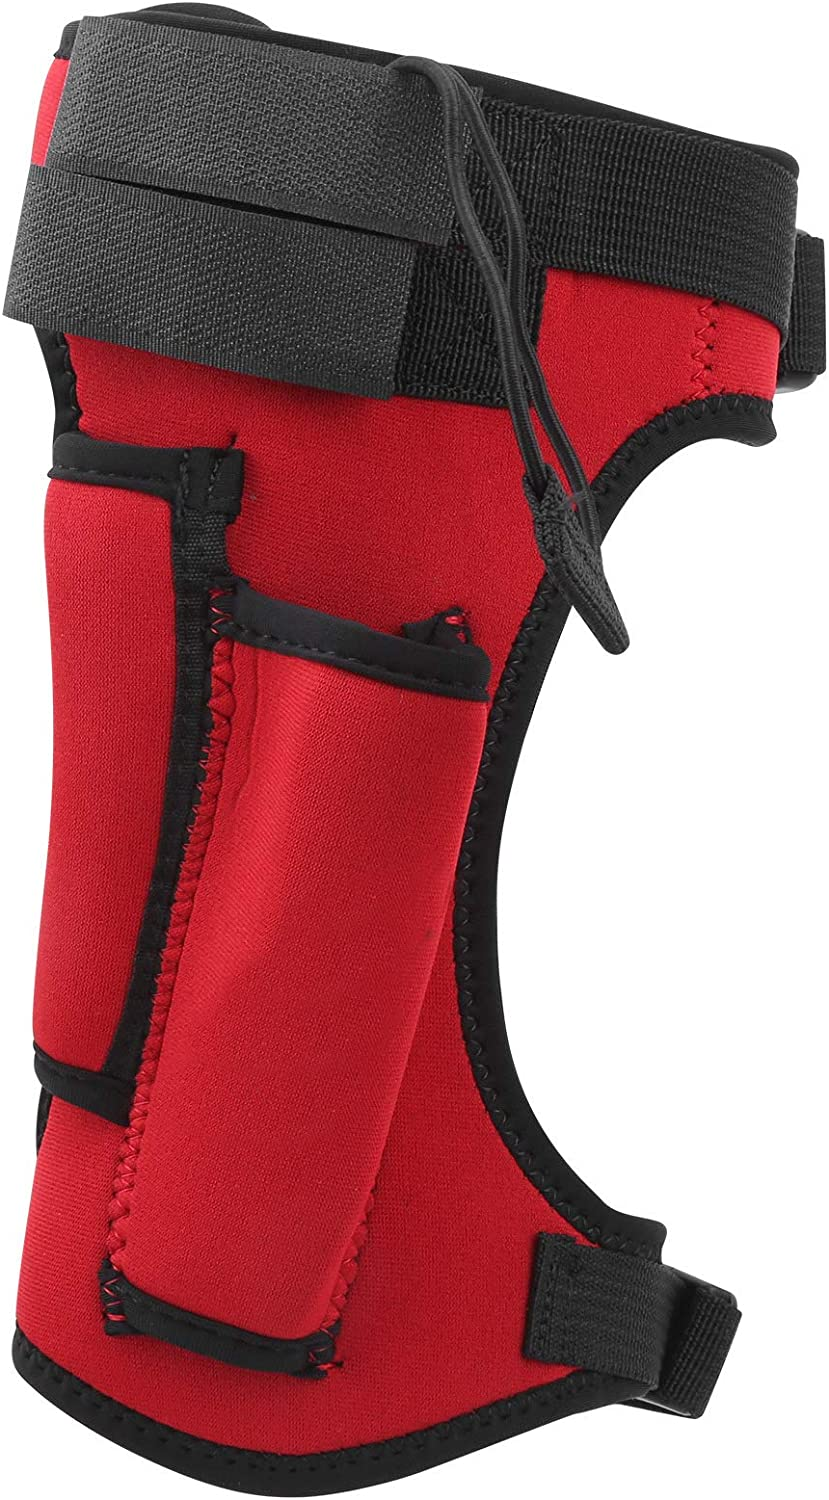 Taidda- 3.5Mm Neoprene+Nylon Cloth Limited price sale 121G Wrap Diving Sh Red Knife A surprise price is realized